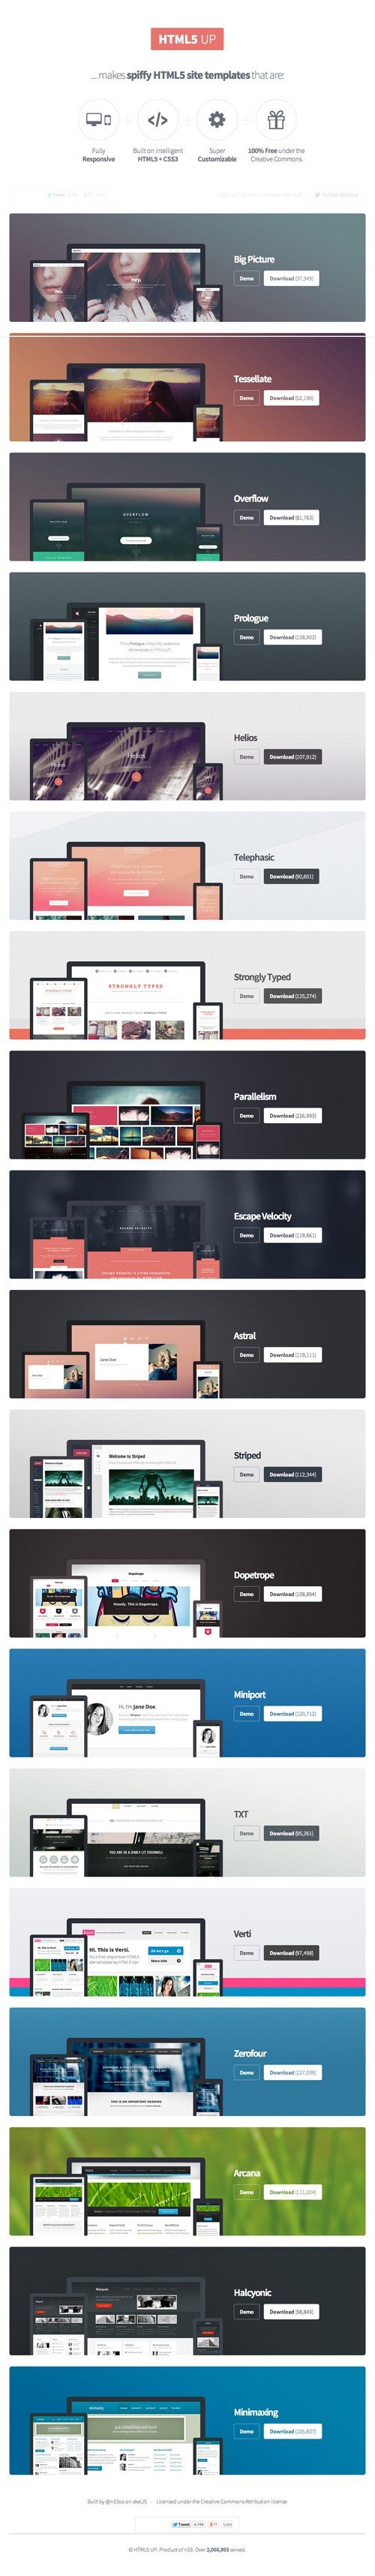 HTML5-UP--Responsive-HTML5-and-CSS3-Site-Templates